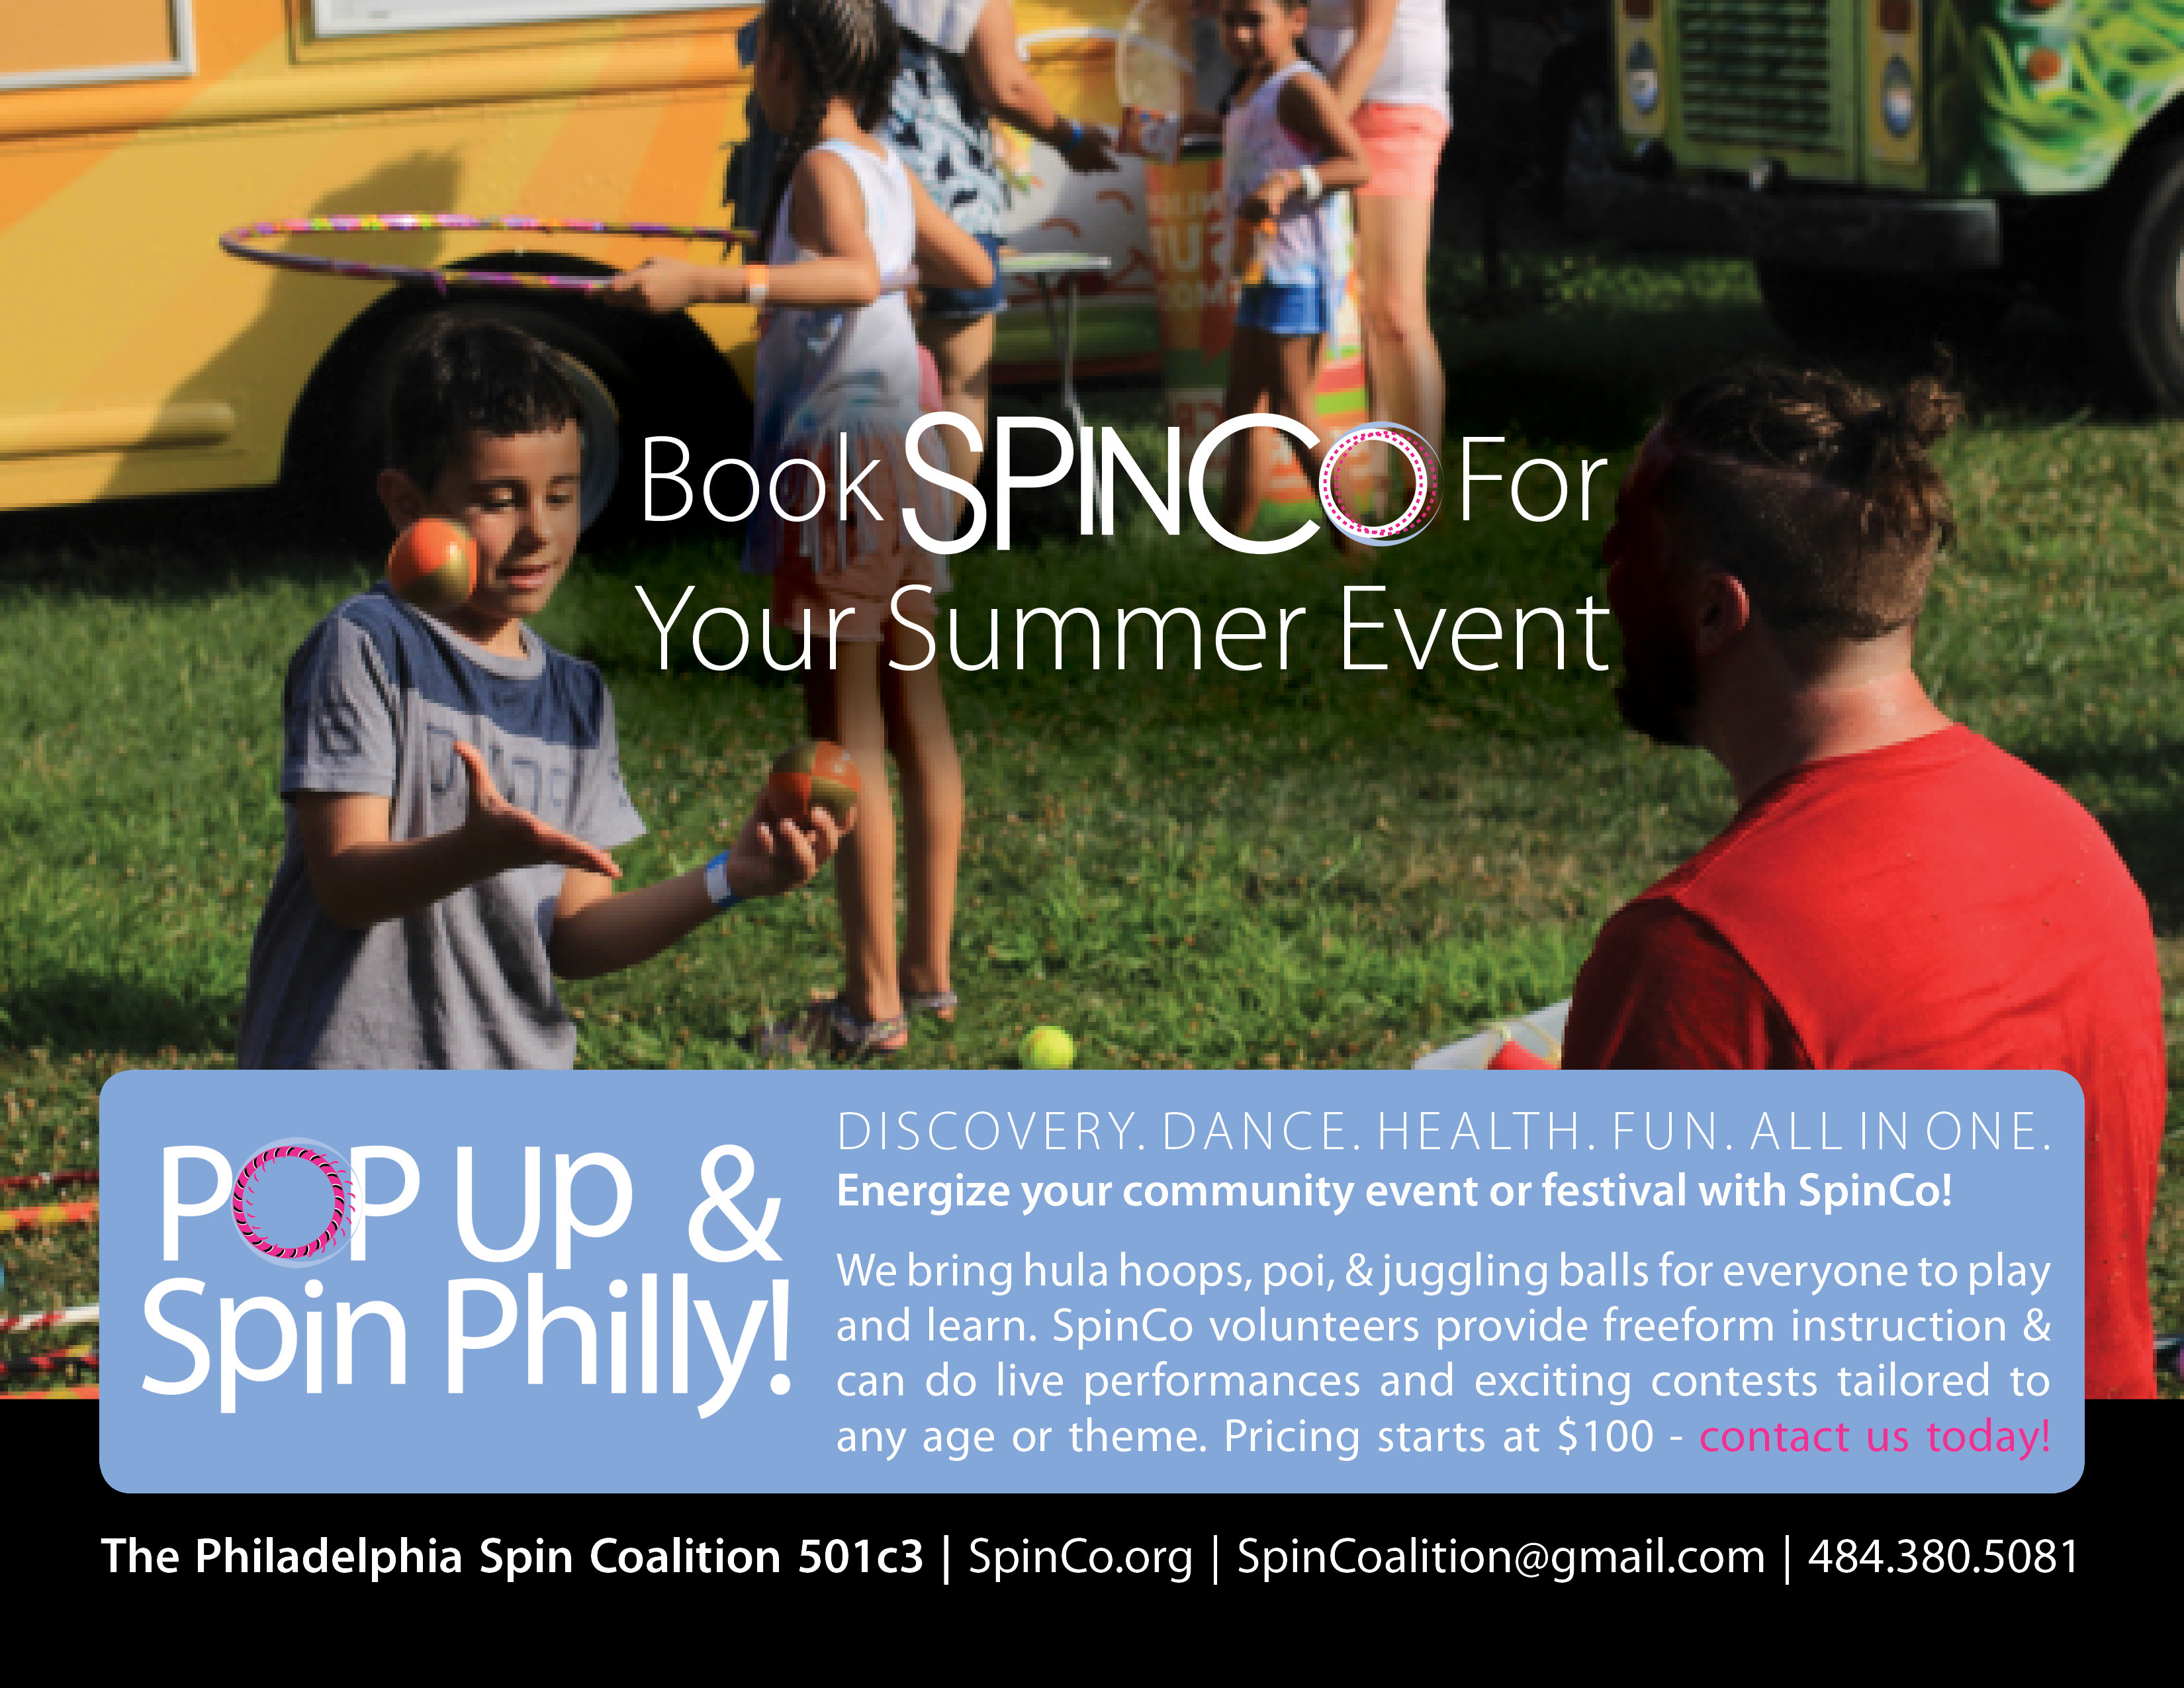 Book SpinCo for your summer event